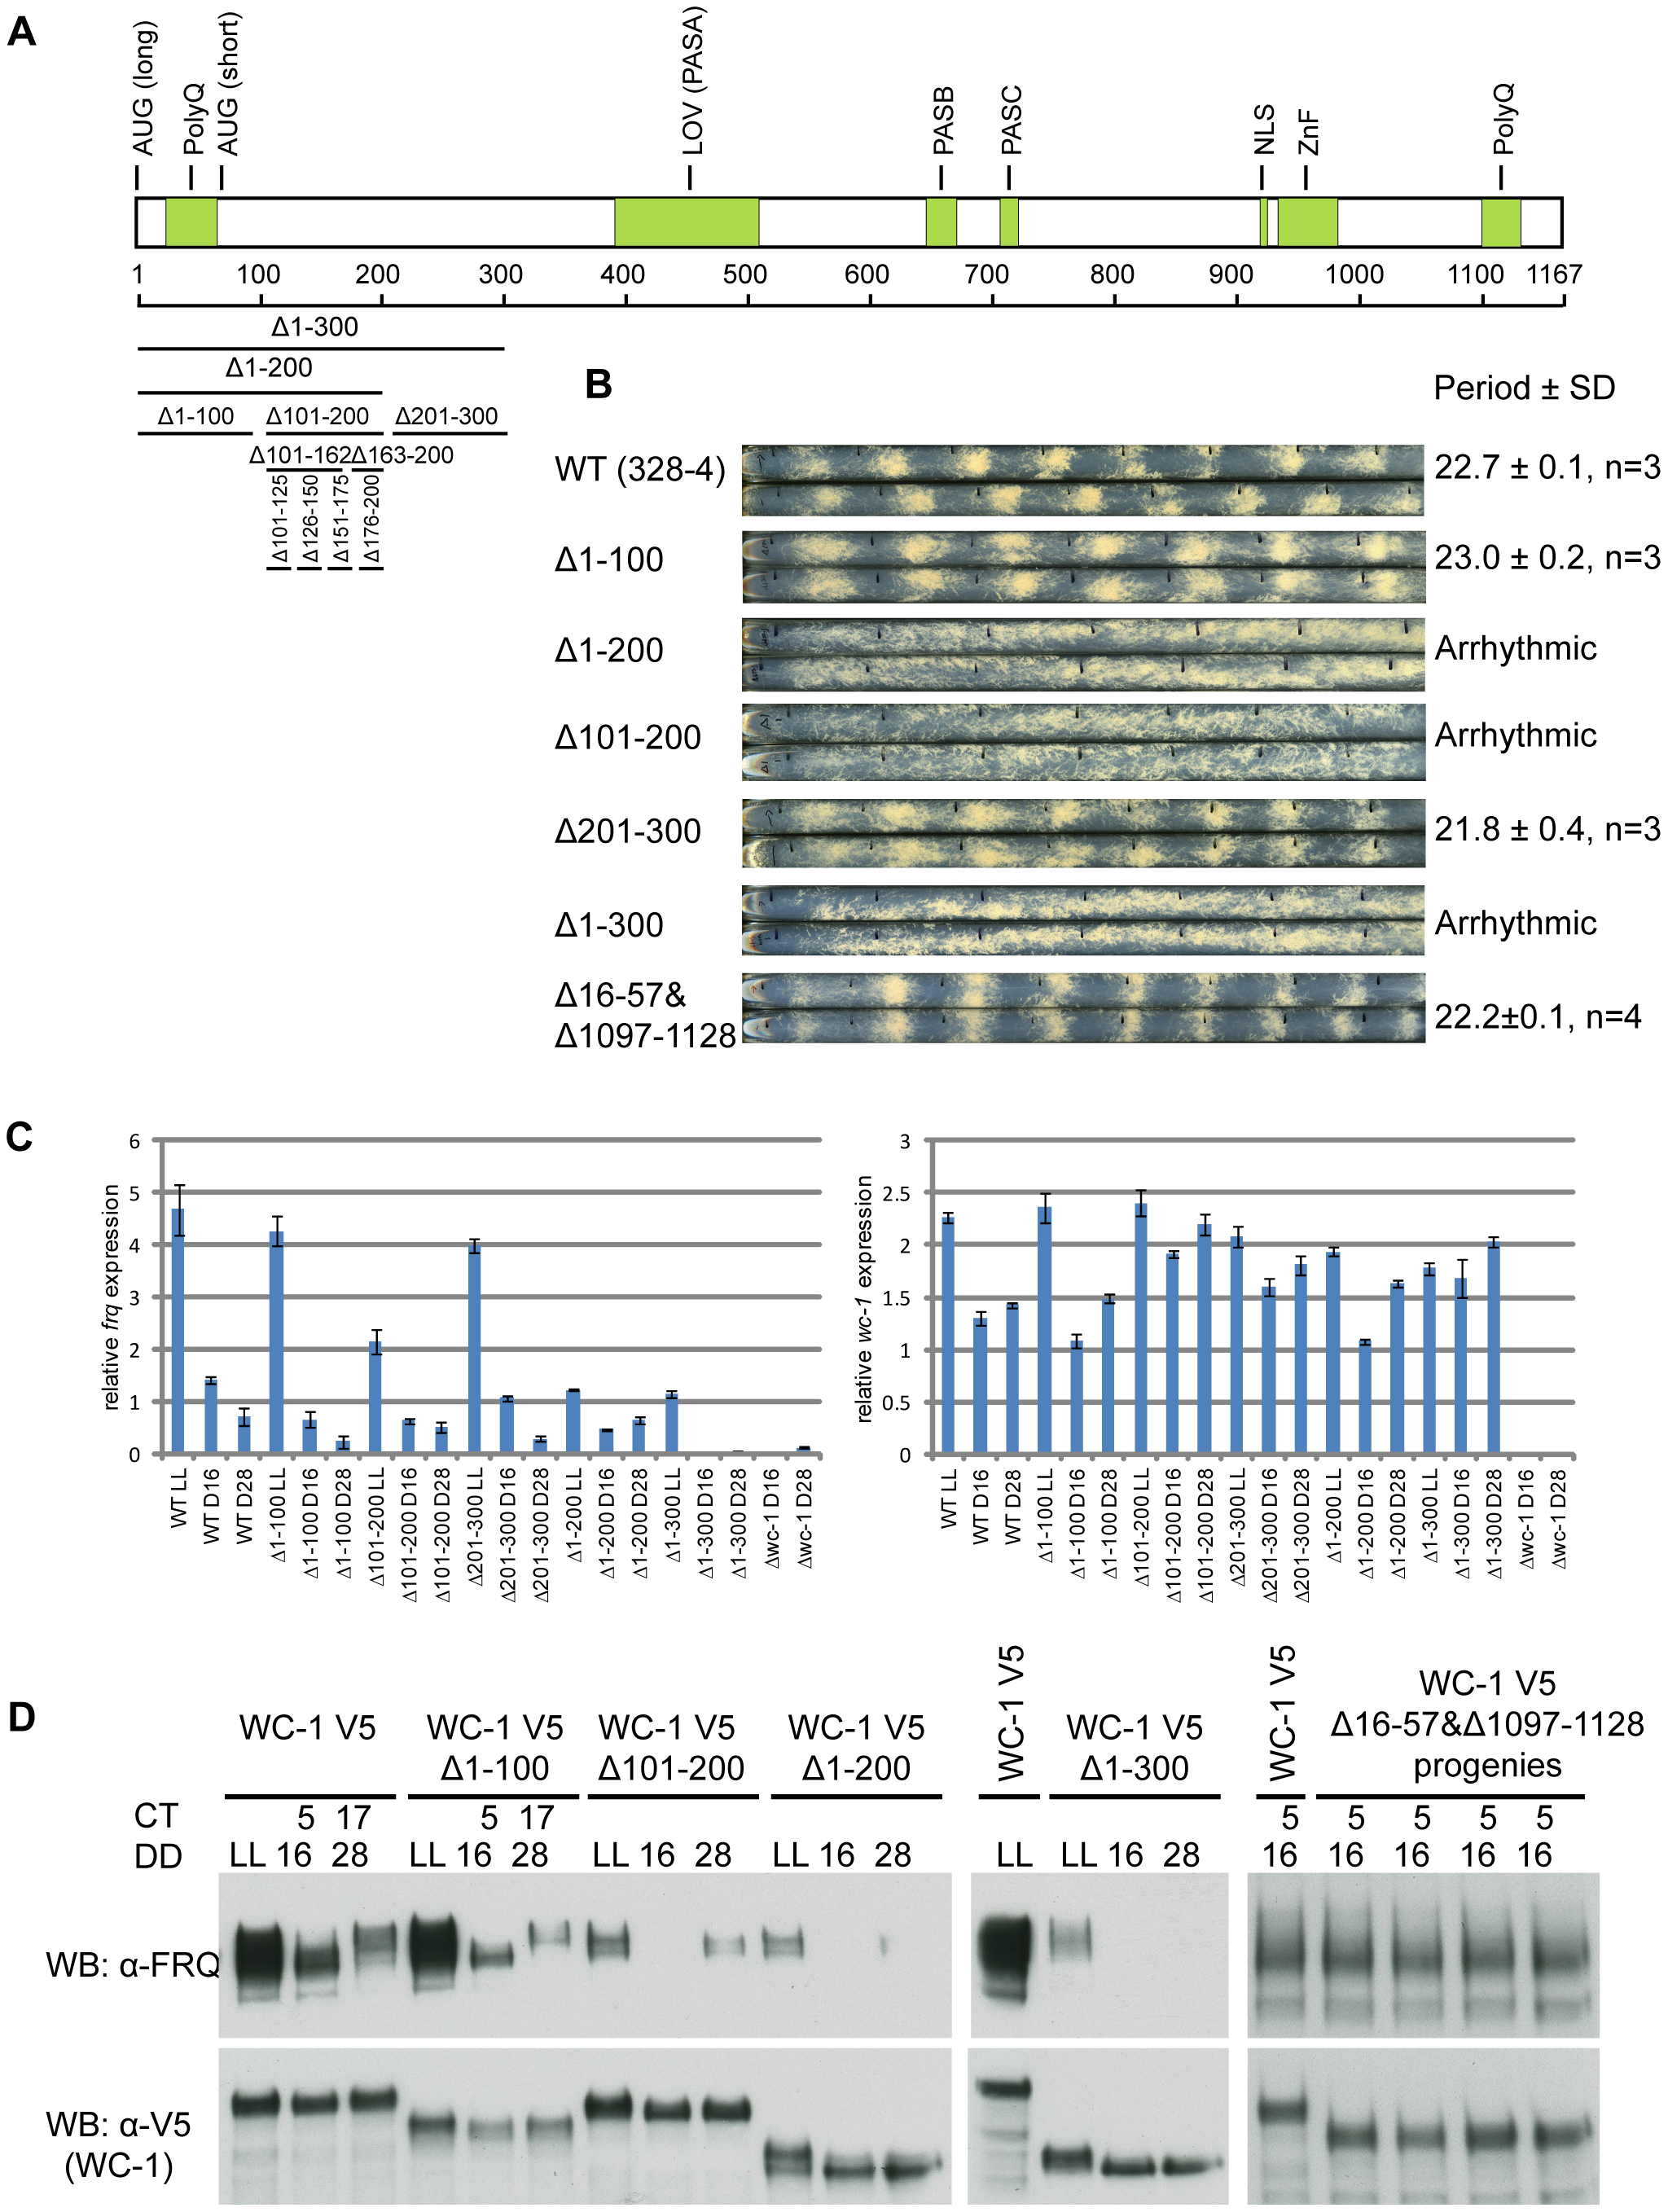 Identification of aa 100-200 as the transcriptional activation domain for WC-1.